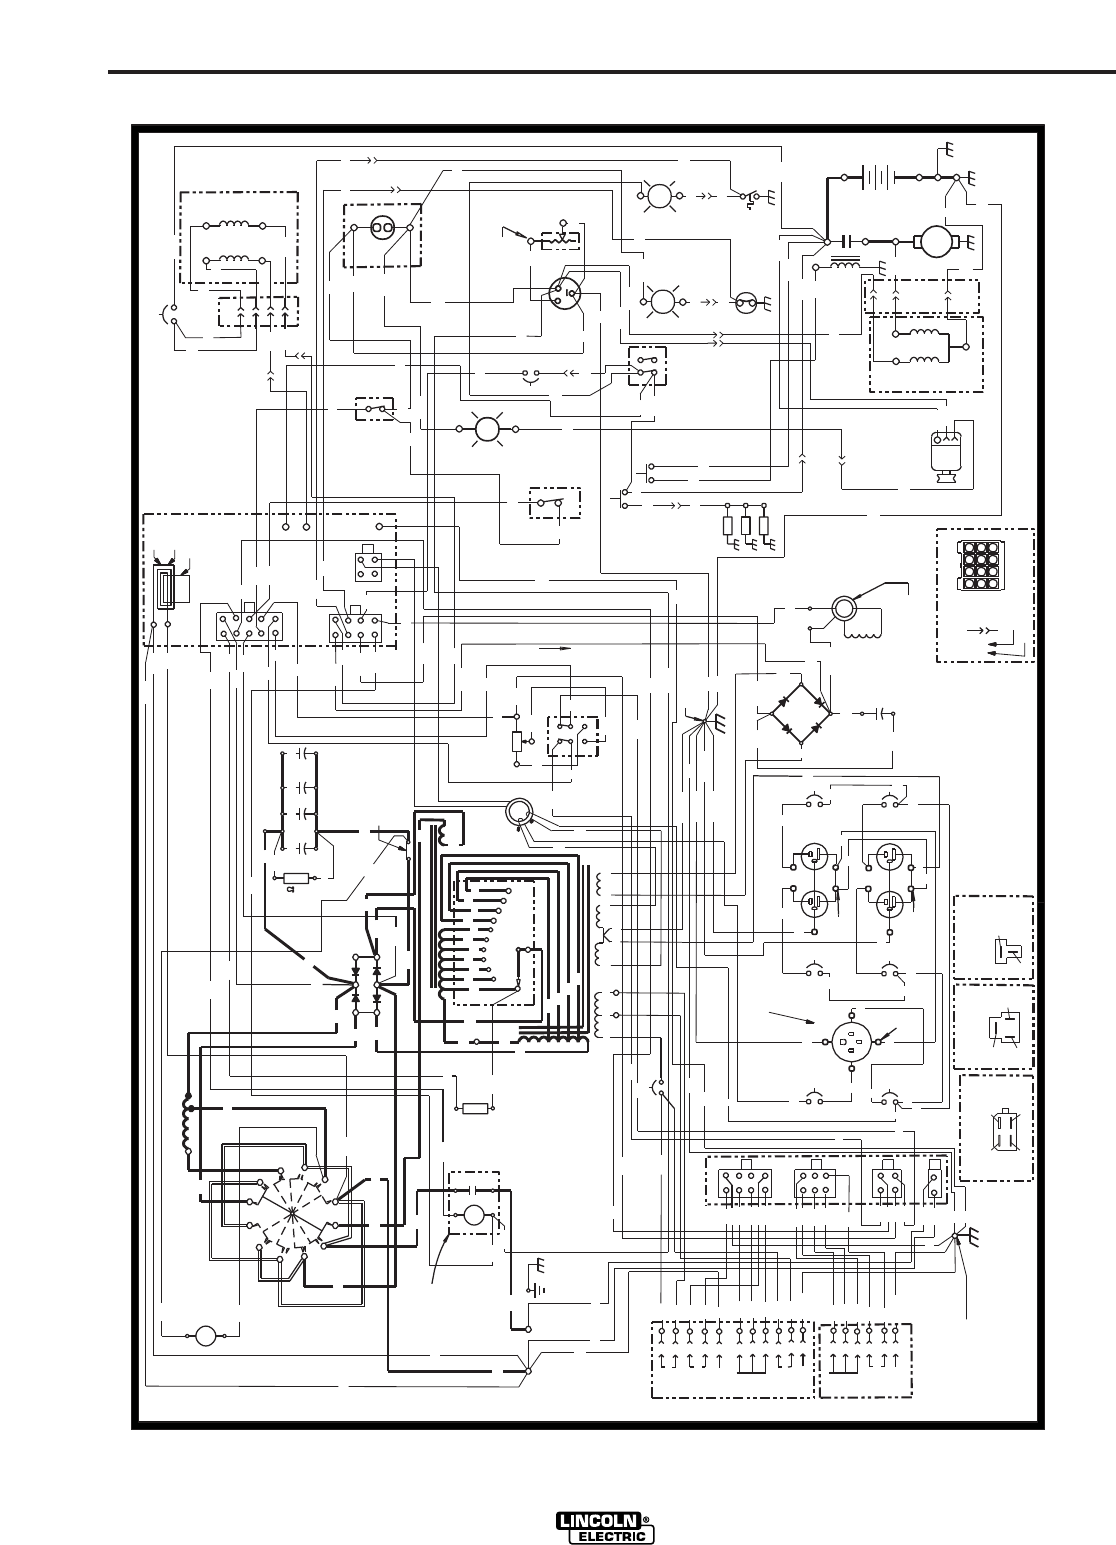 62a1363e f46d 4f39 a86d 13e2b3ea786f bg2f page 47 of lincoln electric welder 300 d user guide lincoln welder wiring diagram at gsmx.co